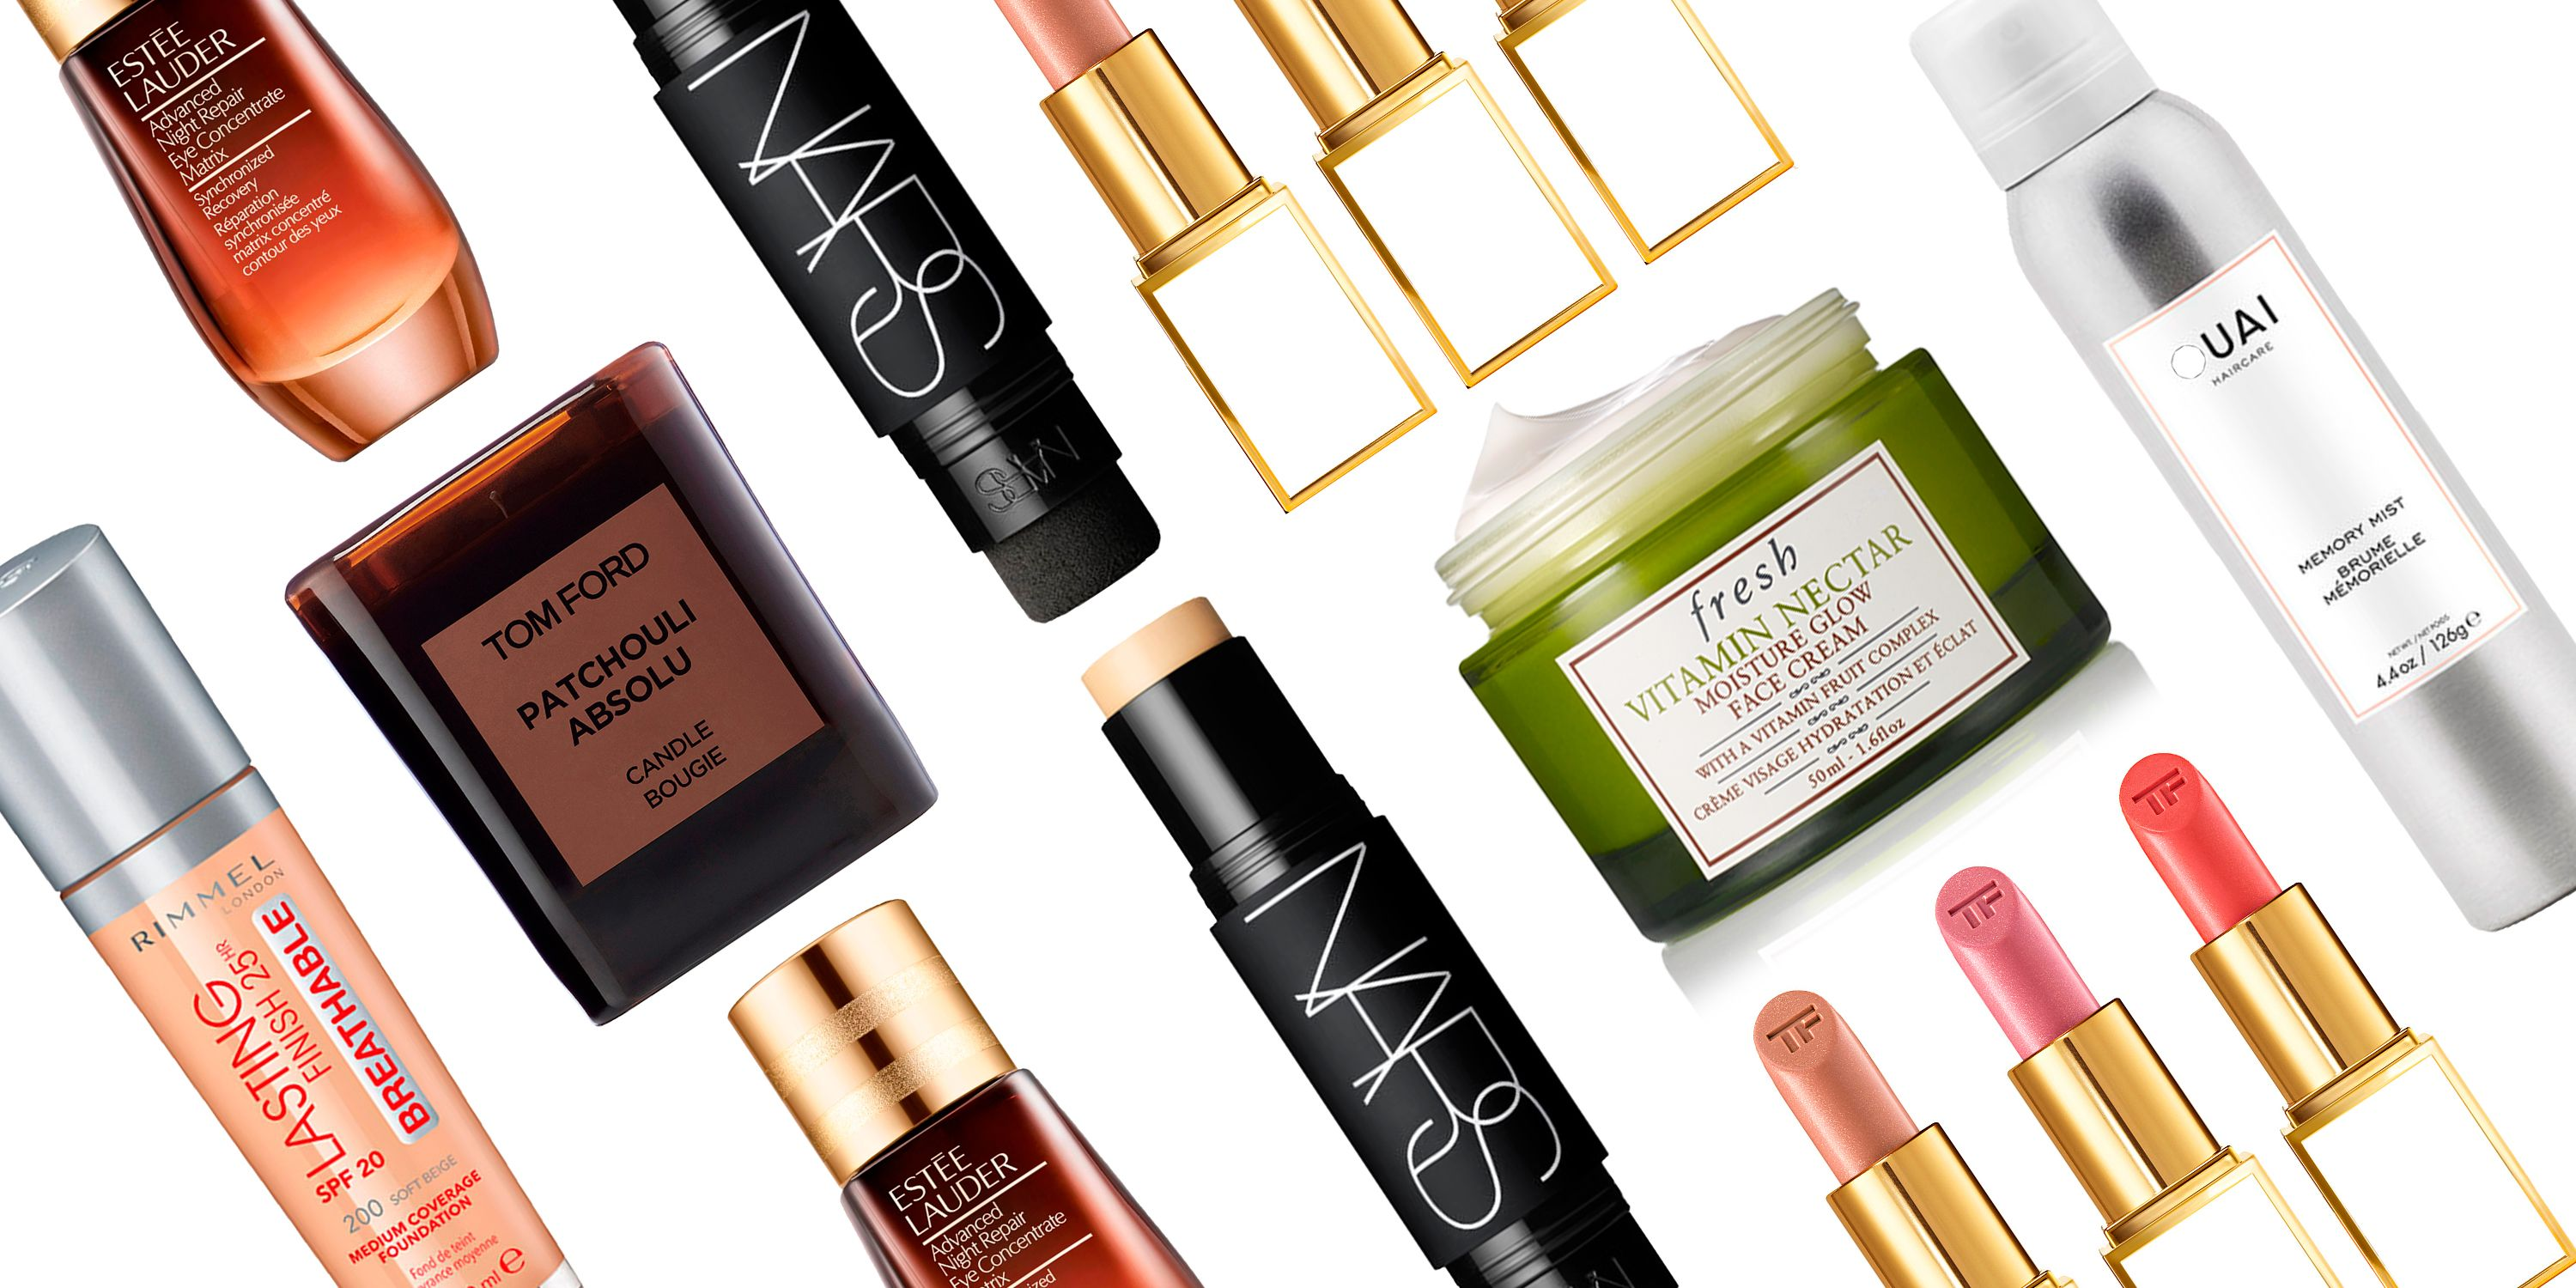 23 new beauty products you need to know about this October